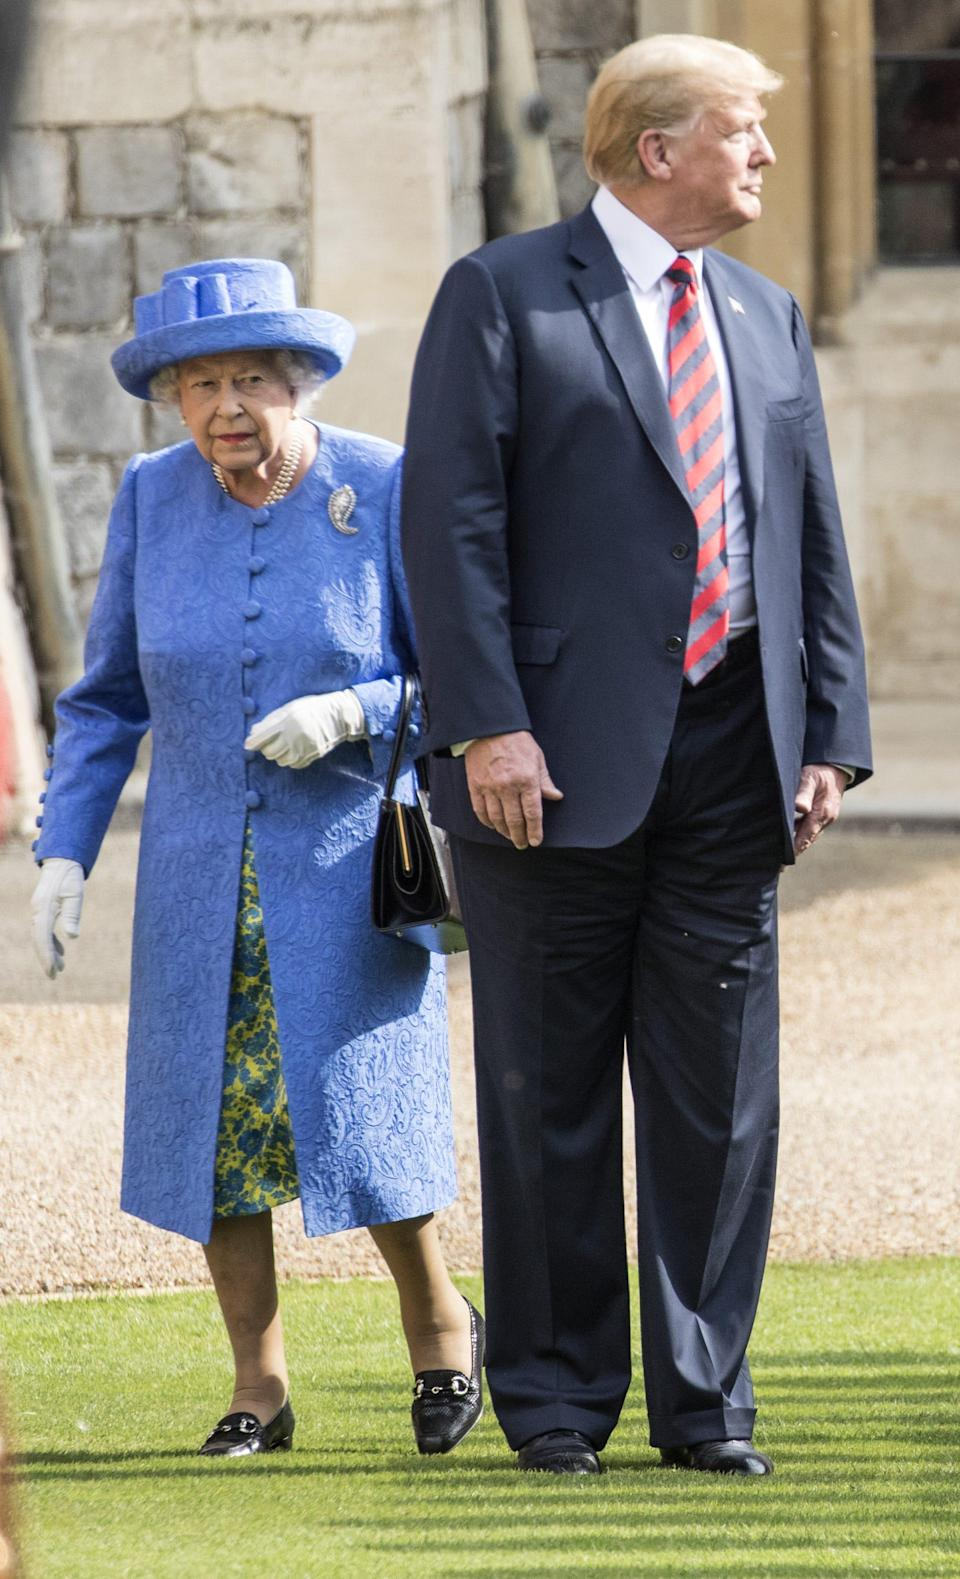 President Donald Trump and Queen Elizabeth II inspect a Guard of Honour on the Quadrangle at Windsor Castle after which he and first lady Melania Trump joined Her Majesty for tea at the castle, on July 13, 2018.